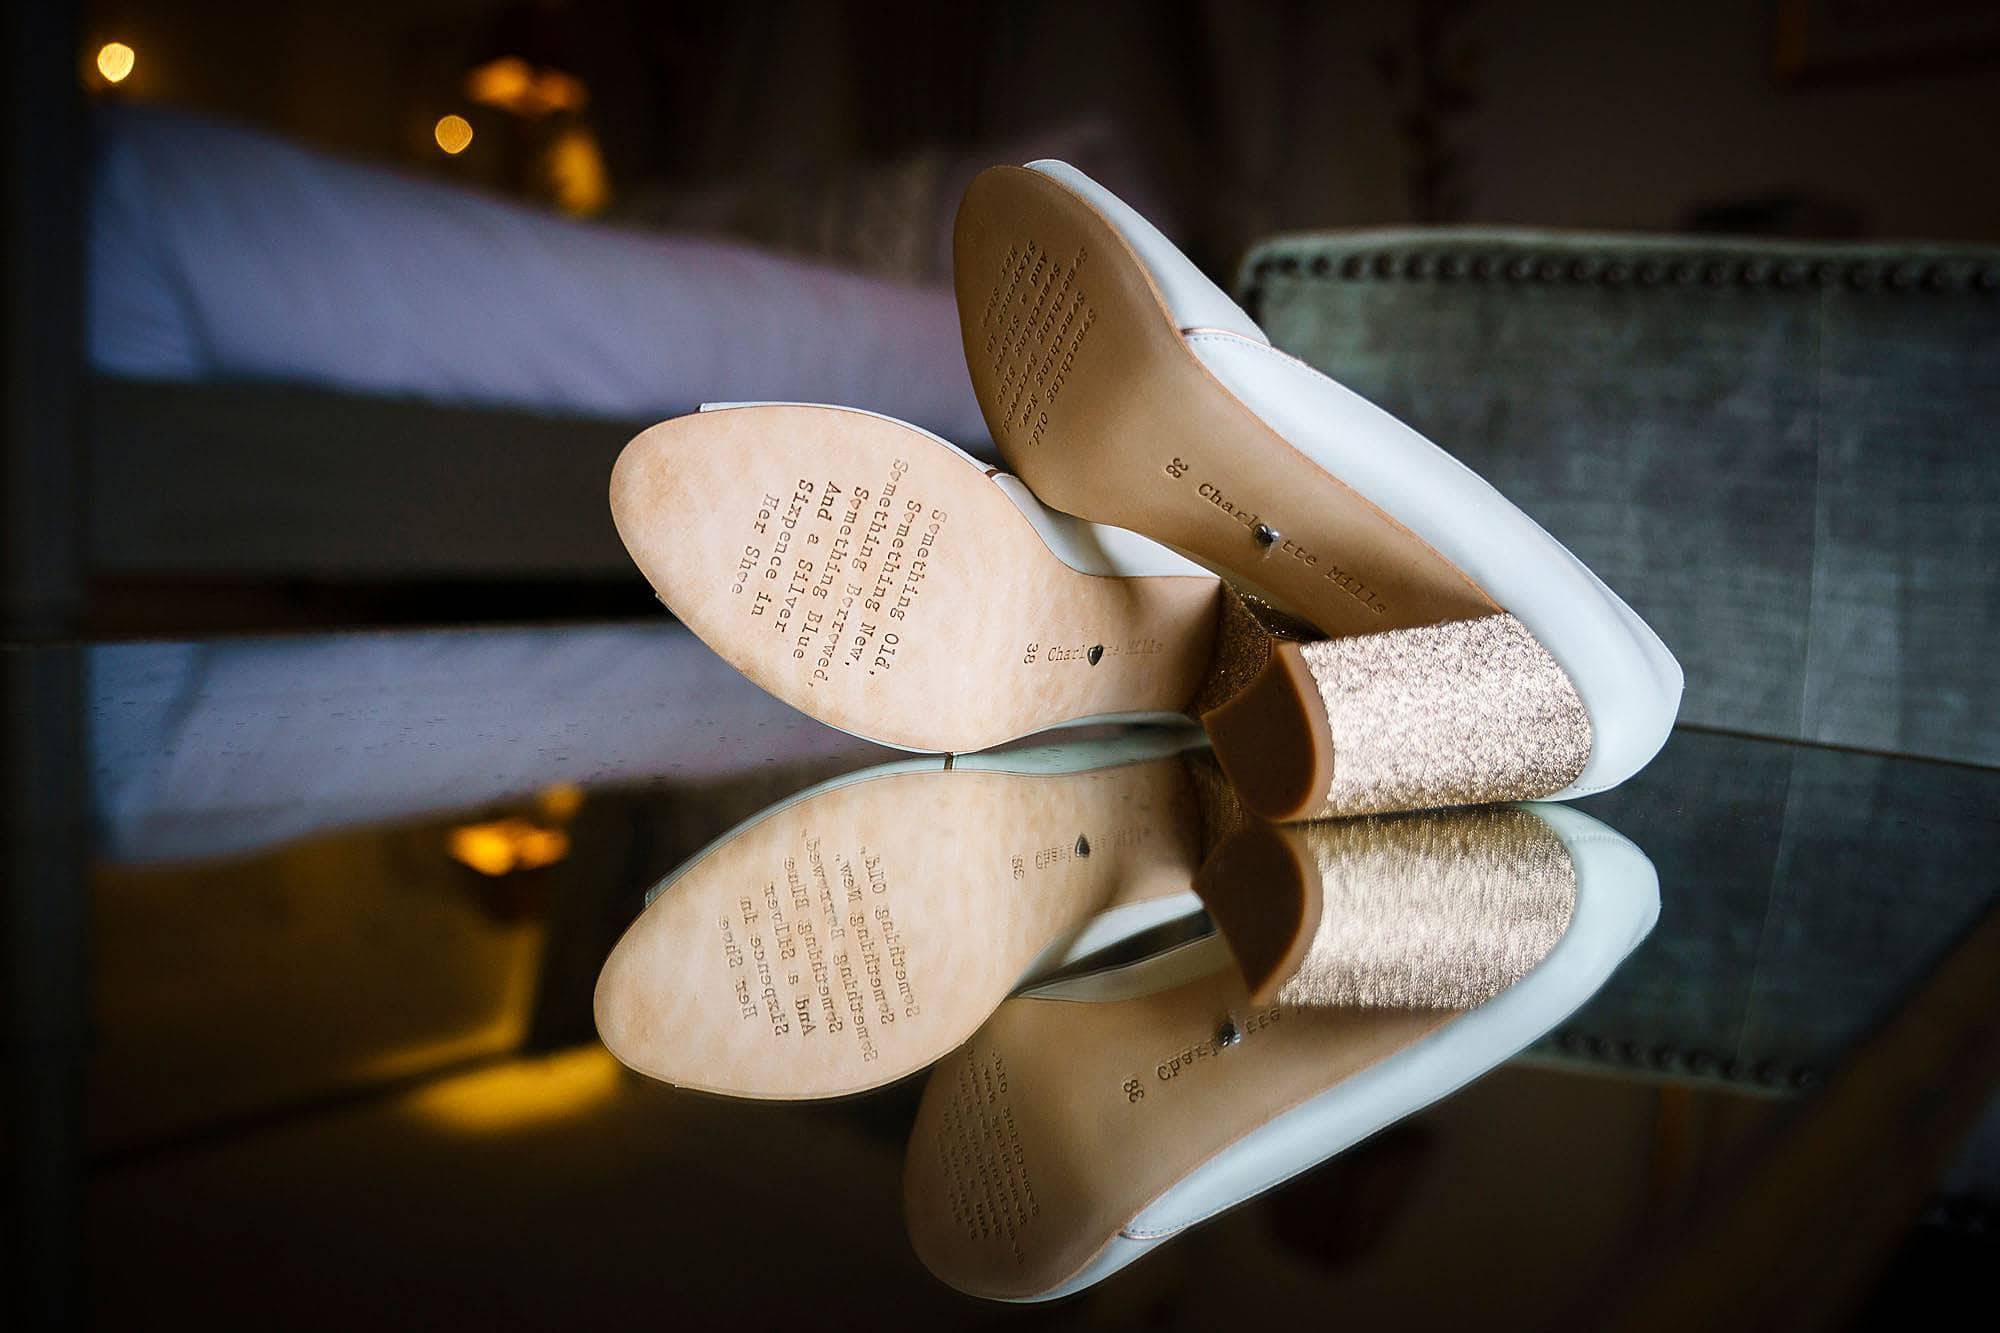 bridal shoes with text on sole